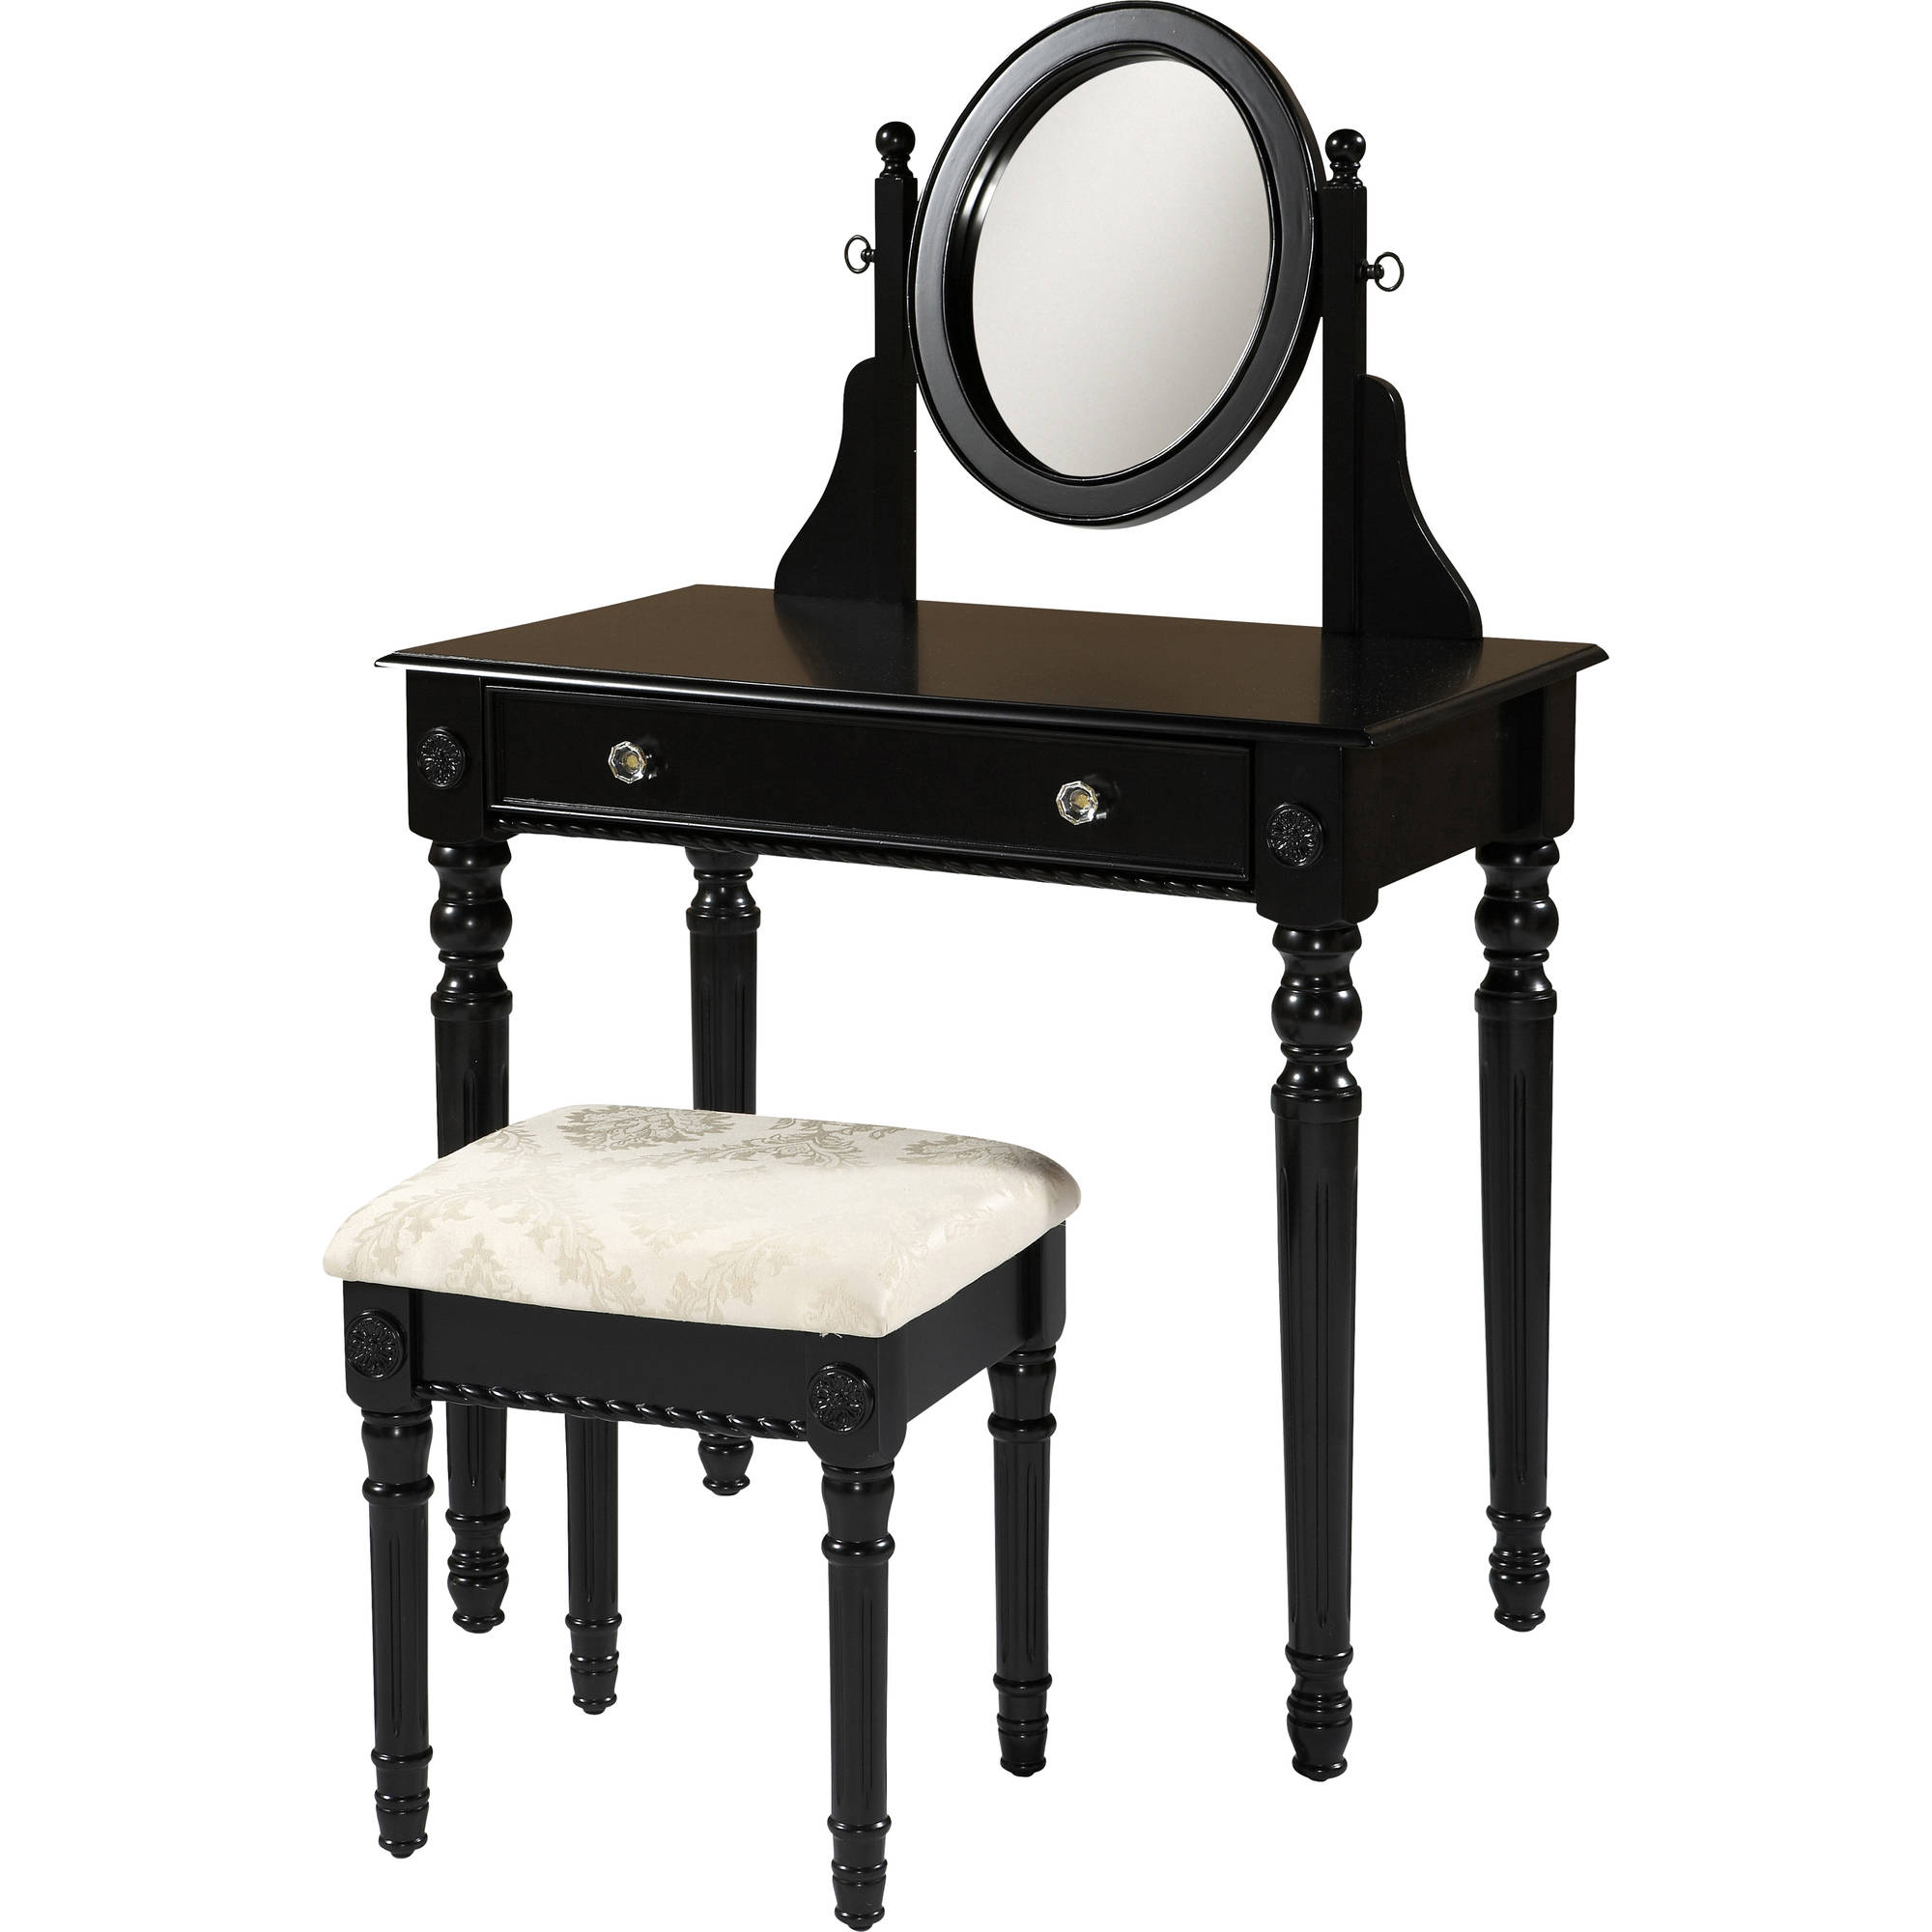 linon home decor lorraine vanity set multiple colors walmartcom - Black Vanity Set